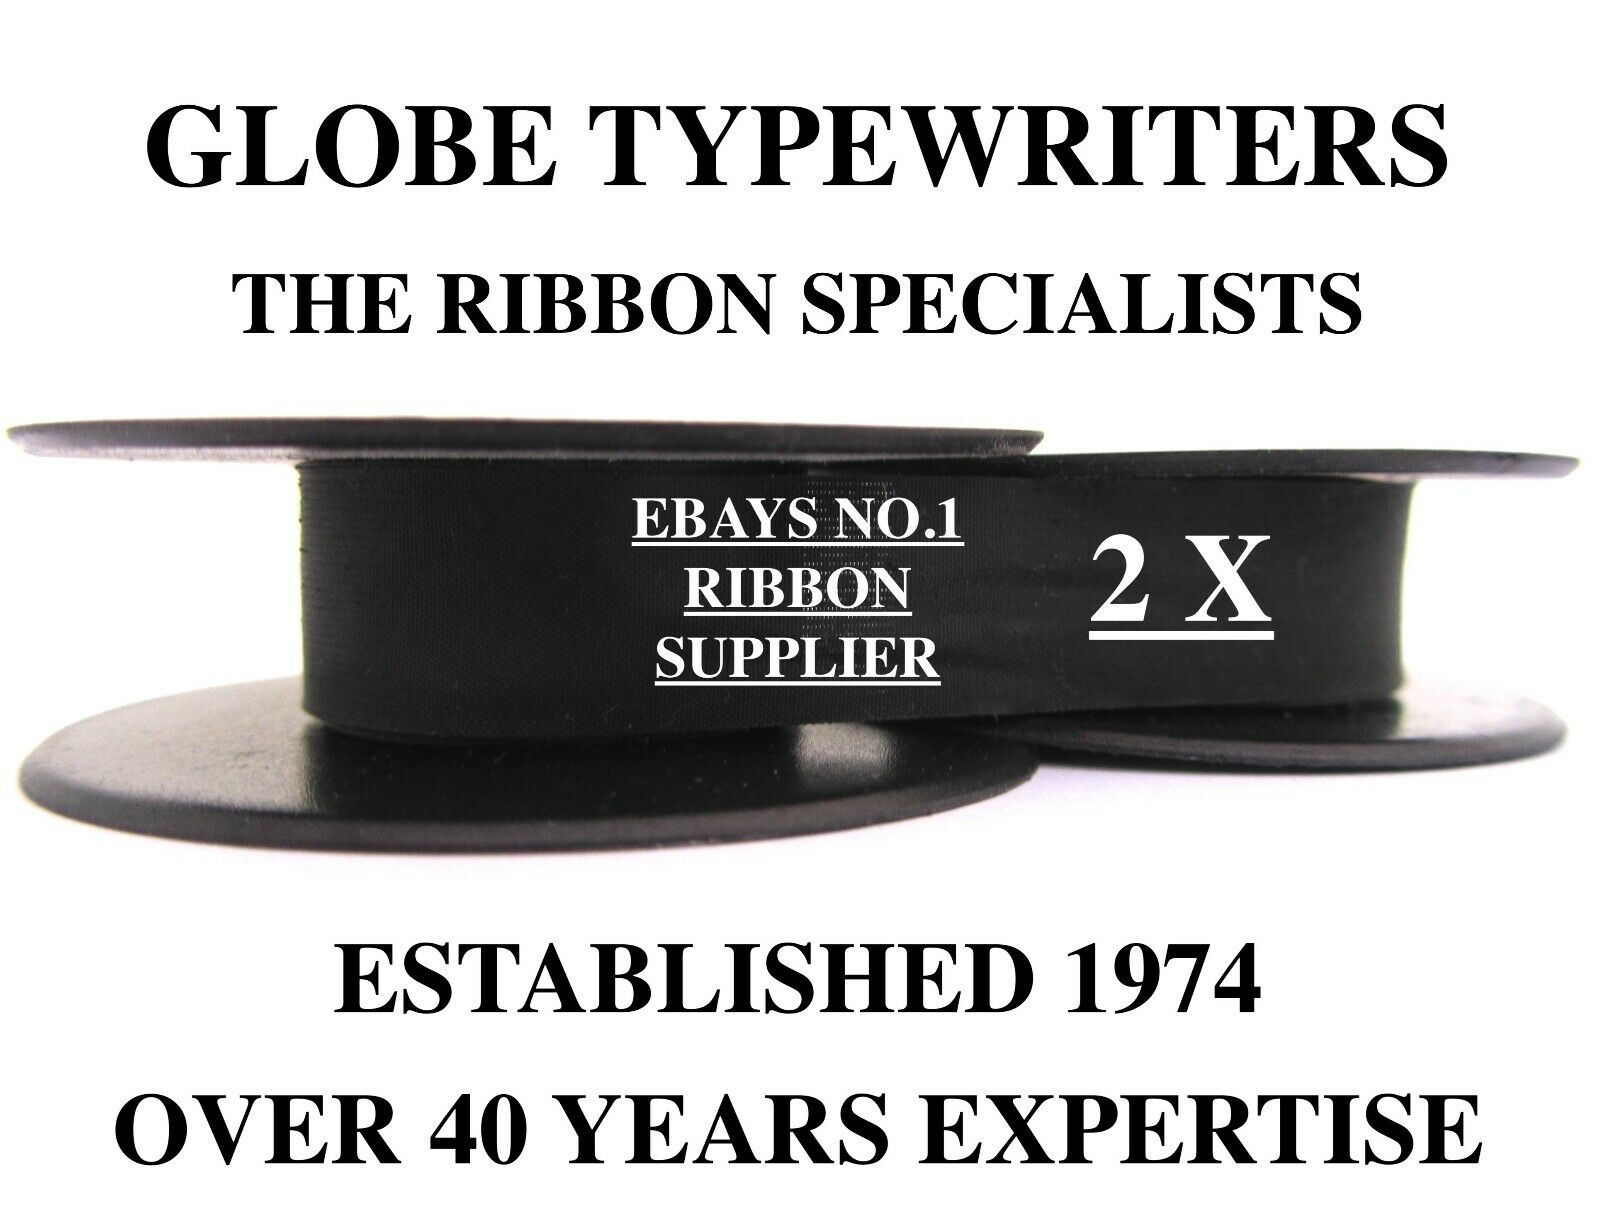 2 x 'SILVER REED SILVERETTE II' *BLACK* TOP QUALITY *10M* TYPEWRITER RIBBONS